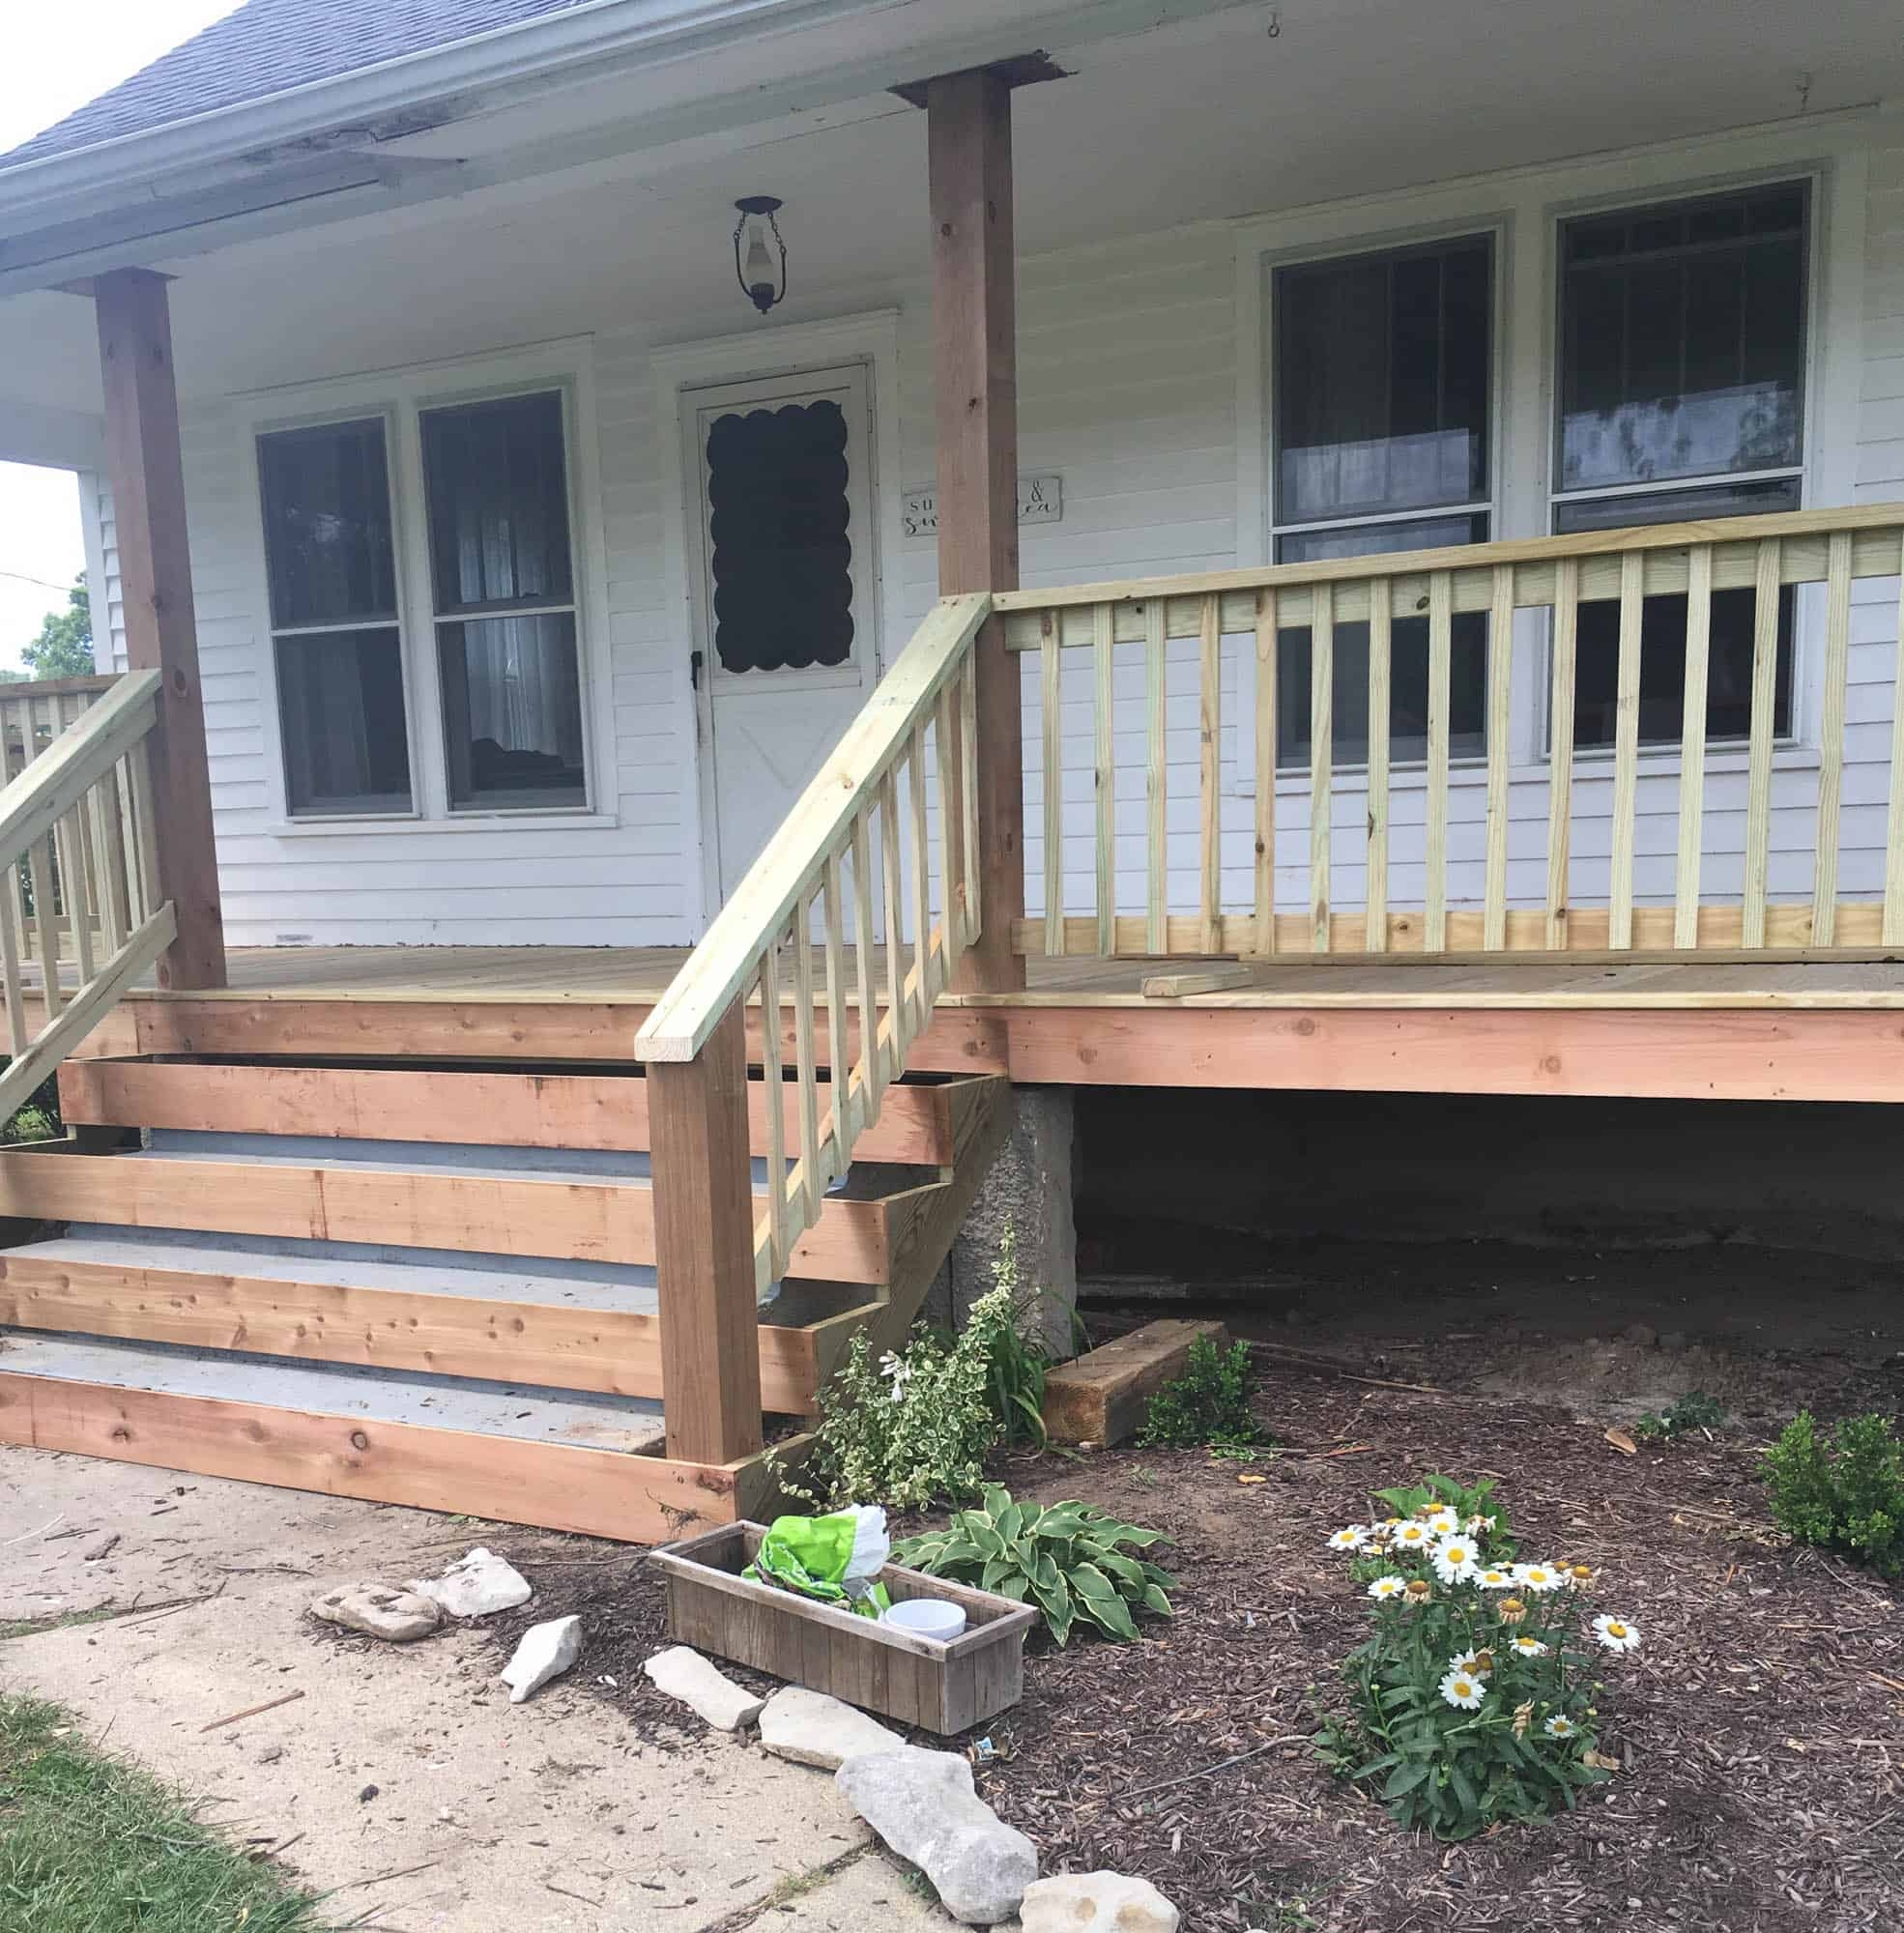 How To Cover Concrete Steps With Wood Farmhouse On Boone   Building Outdoor Steps With Wood   Pea Gravel   Stair Railing   Porch Steps   Composite Decking   Hillside